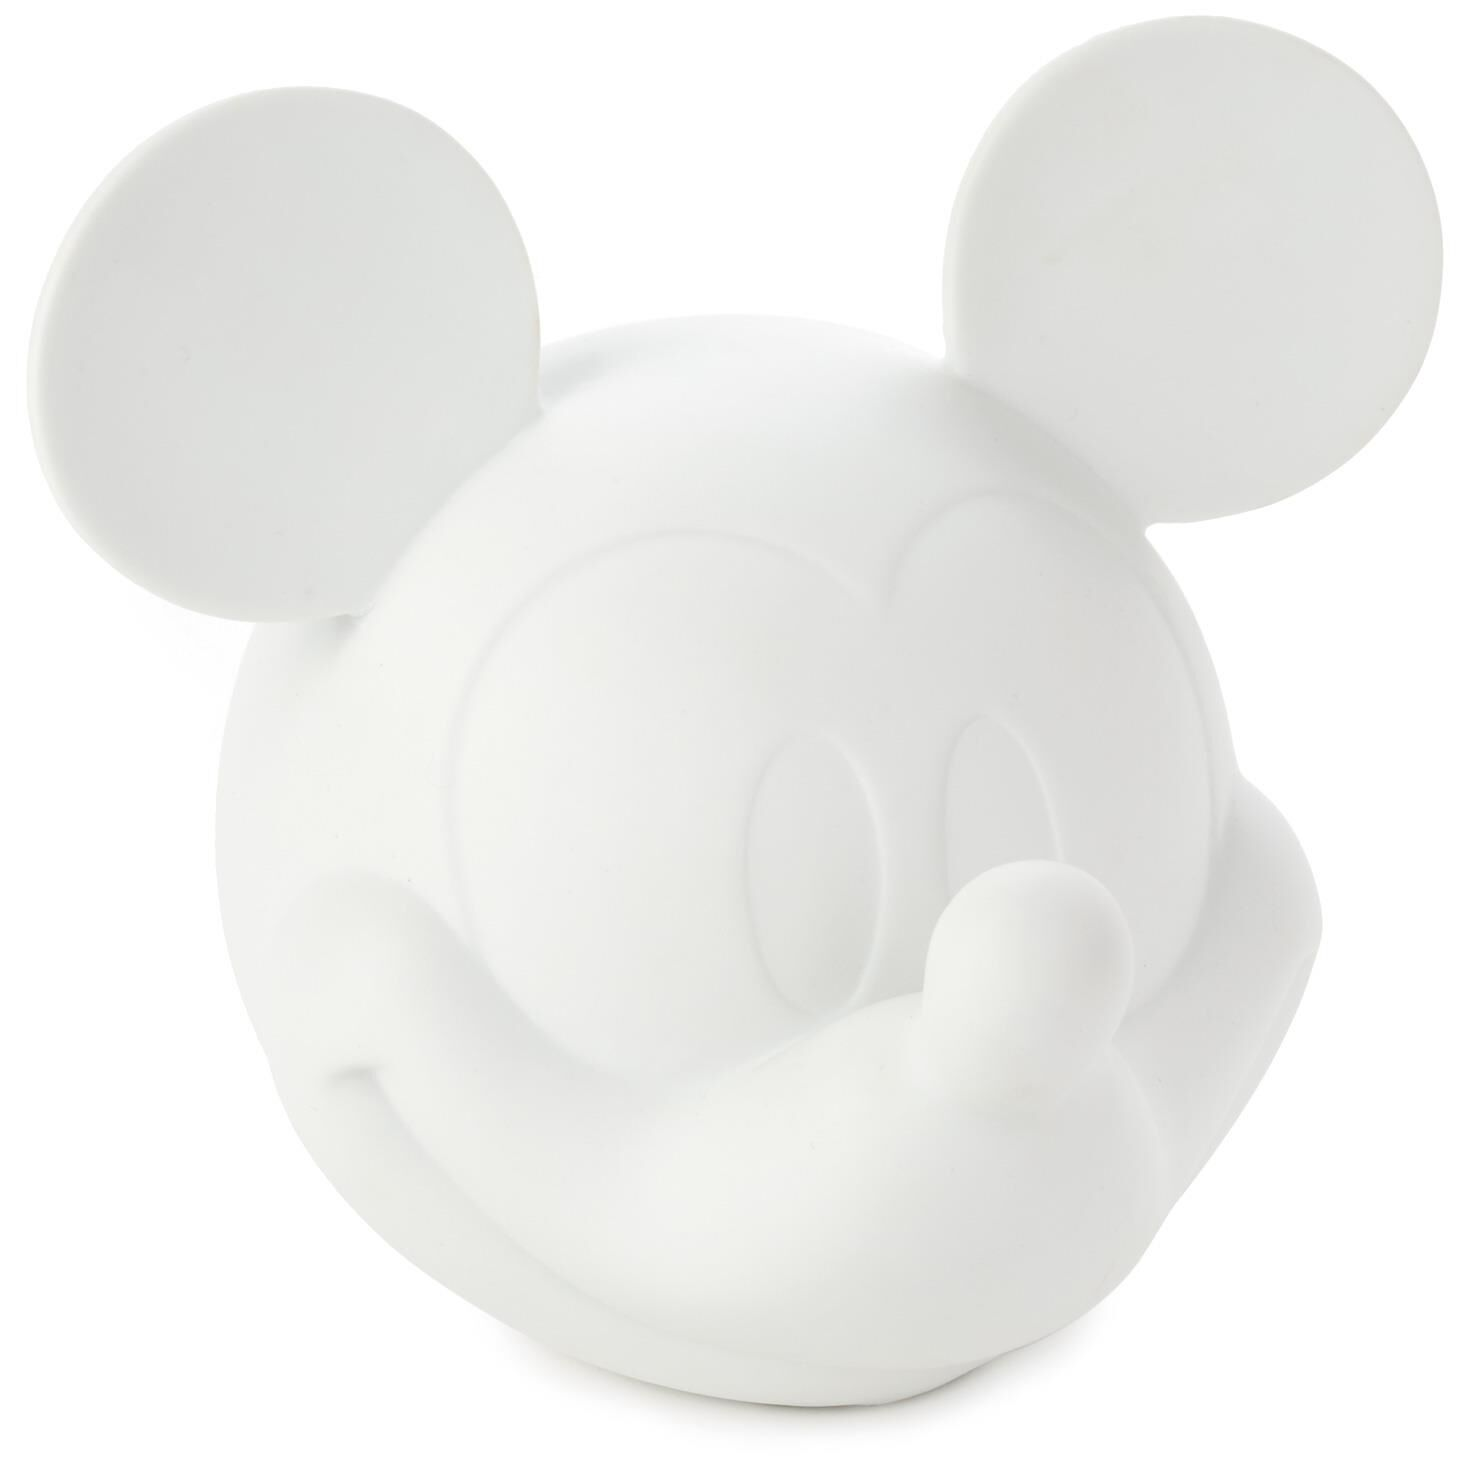 mickey mouse table and chairs australia lazy boy chair a half porcelain night light decorative accessories hallmark